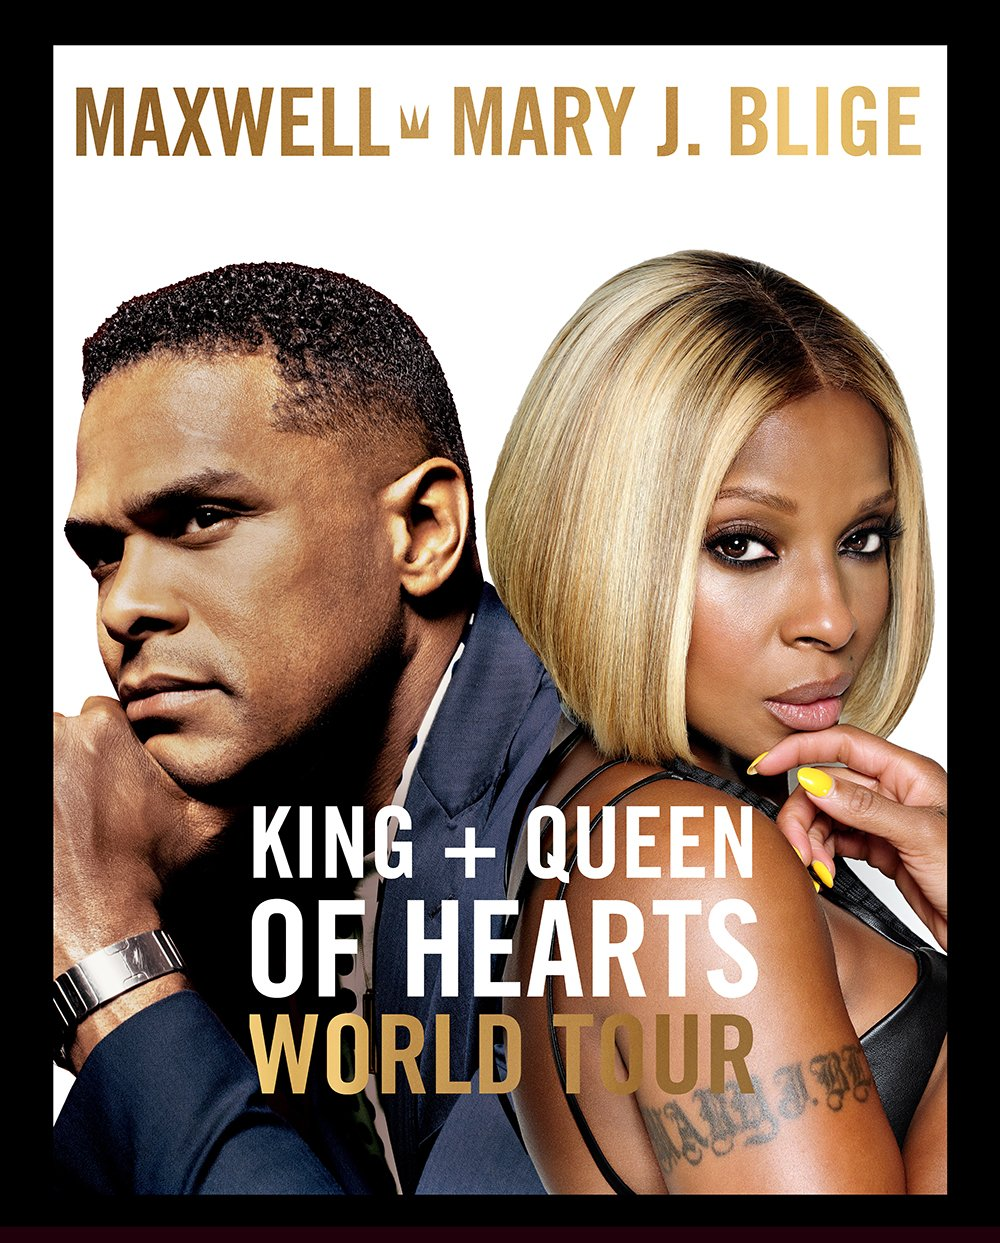 Real love: Mary J. Blige and Maxwell are touring together this fall